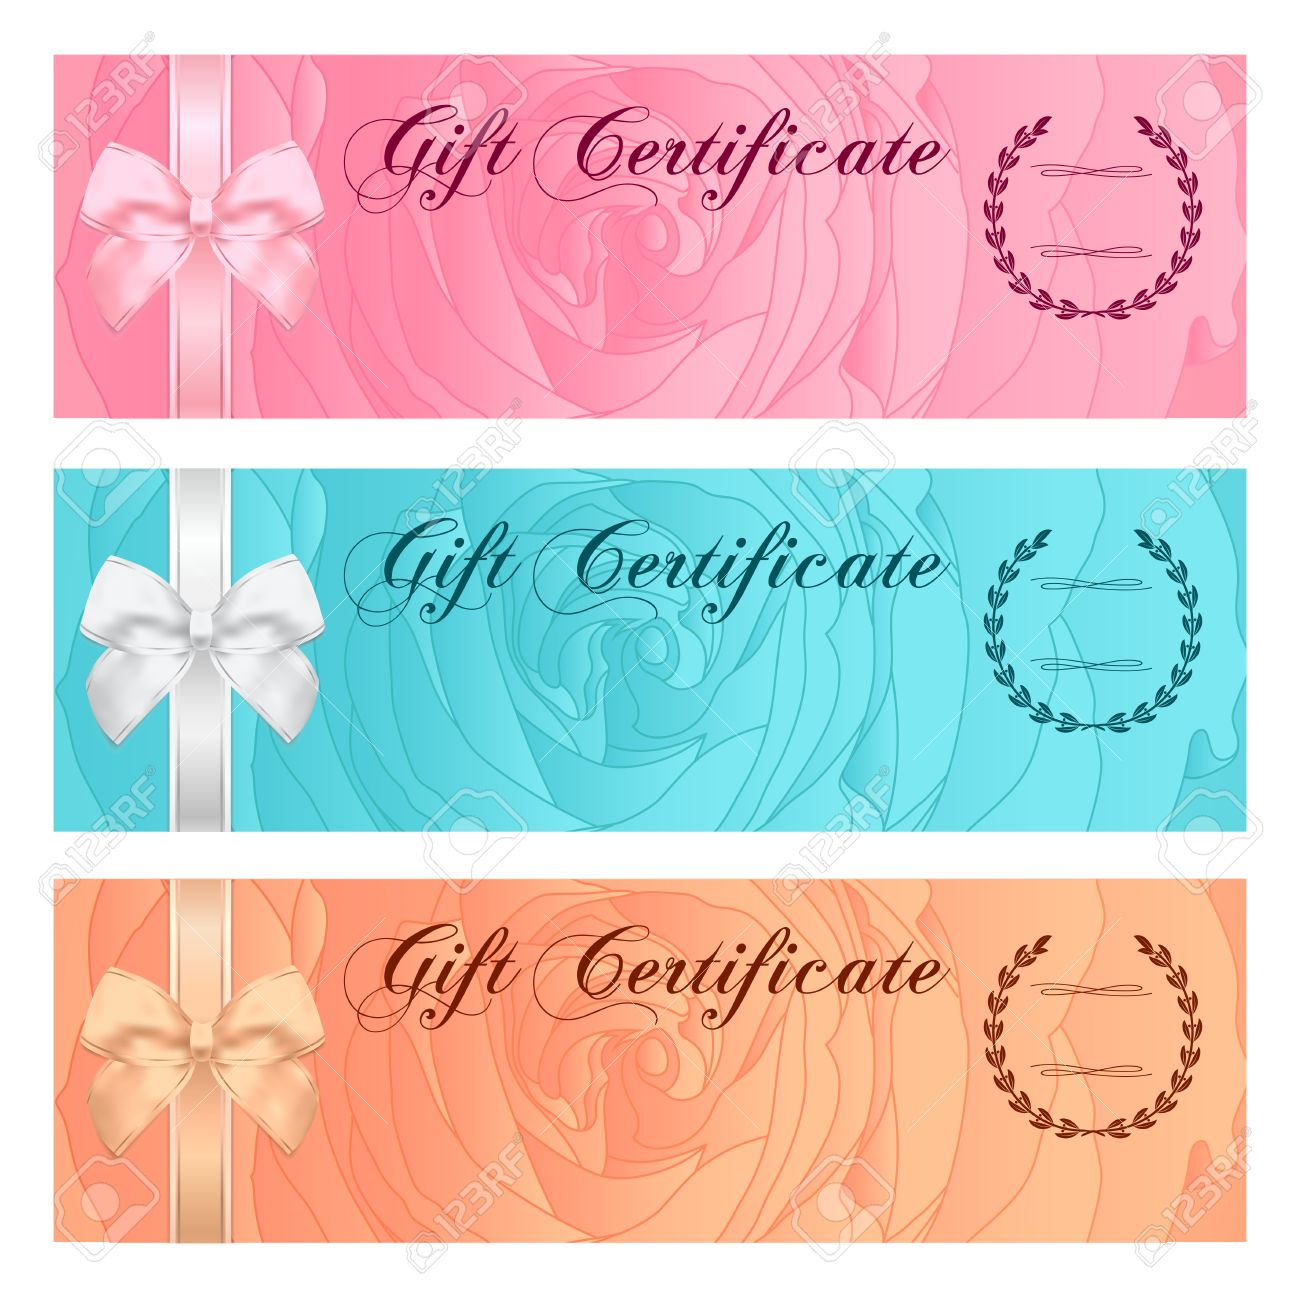 Gift certificate voucher coupon reward gift card template gift certificate voucher coupon reward gift card template with bow floral rose yadclub Image collections